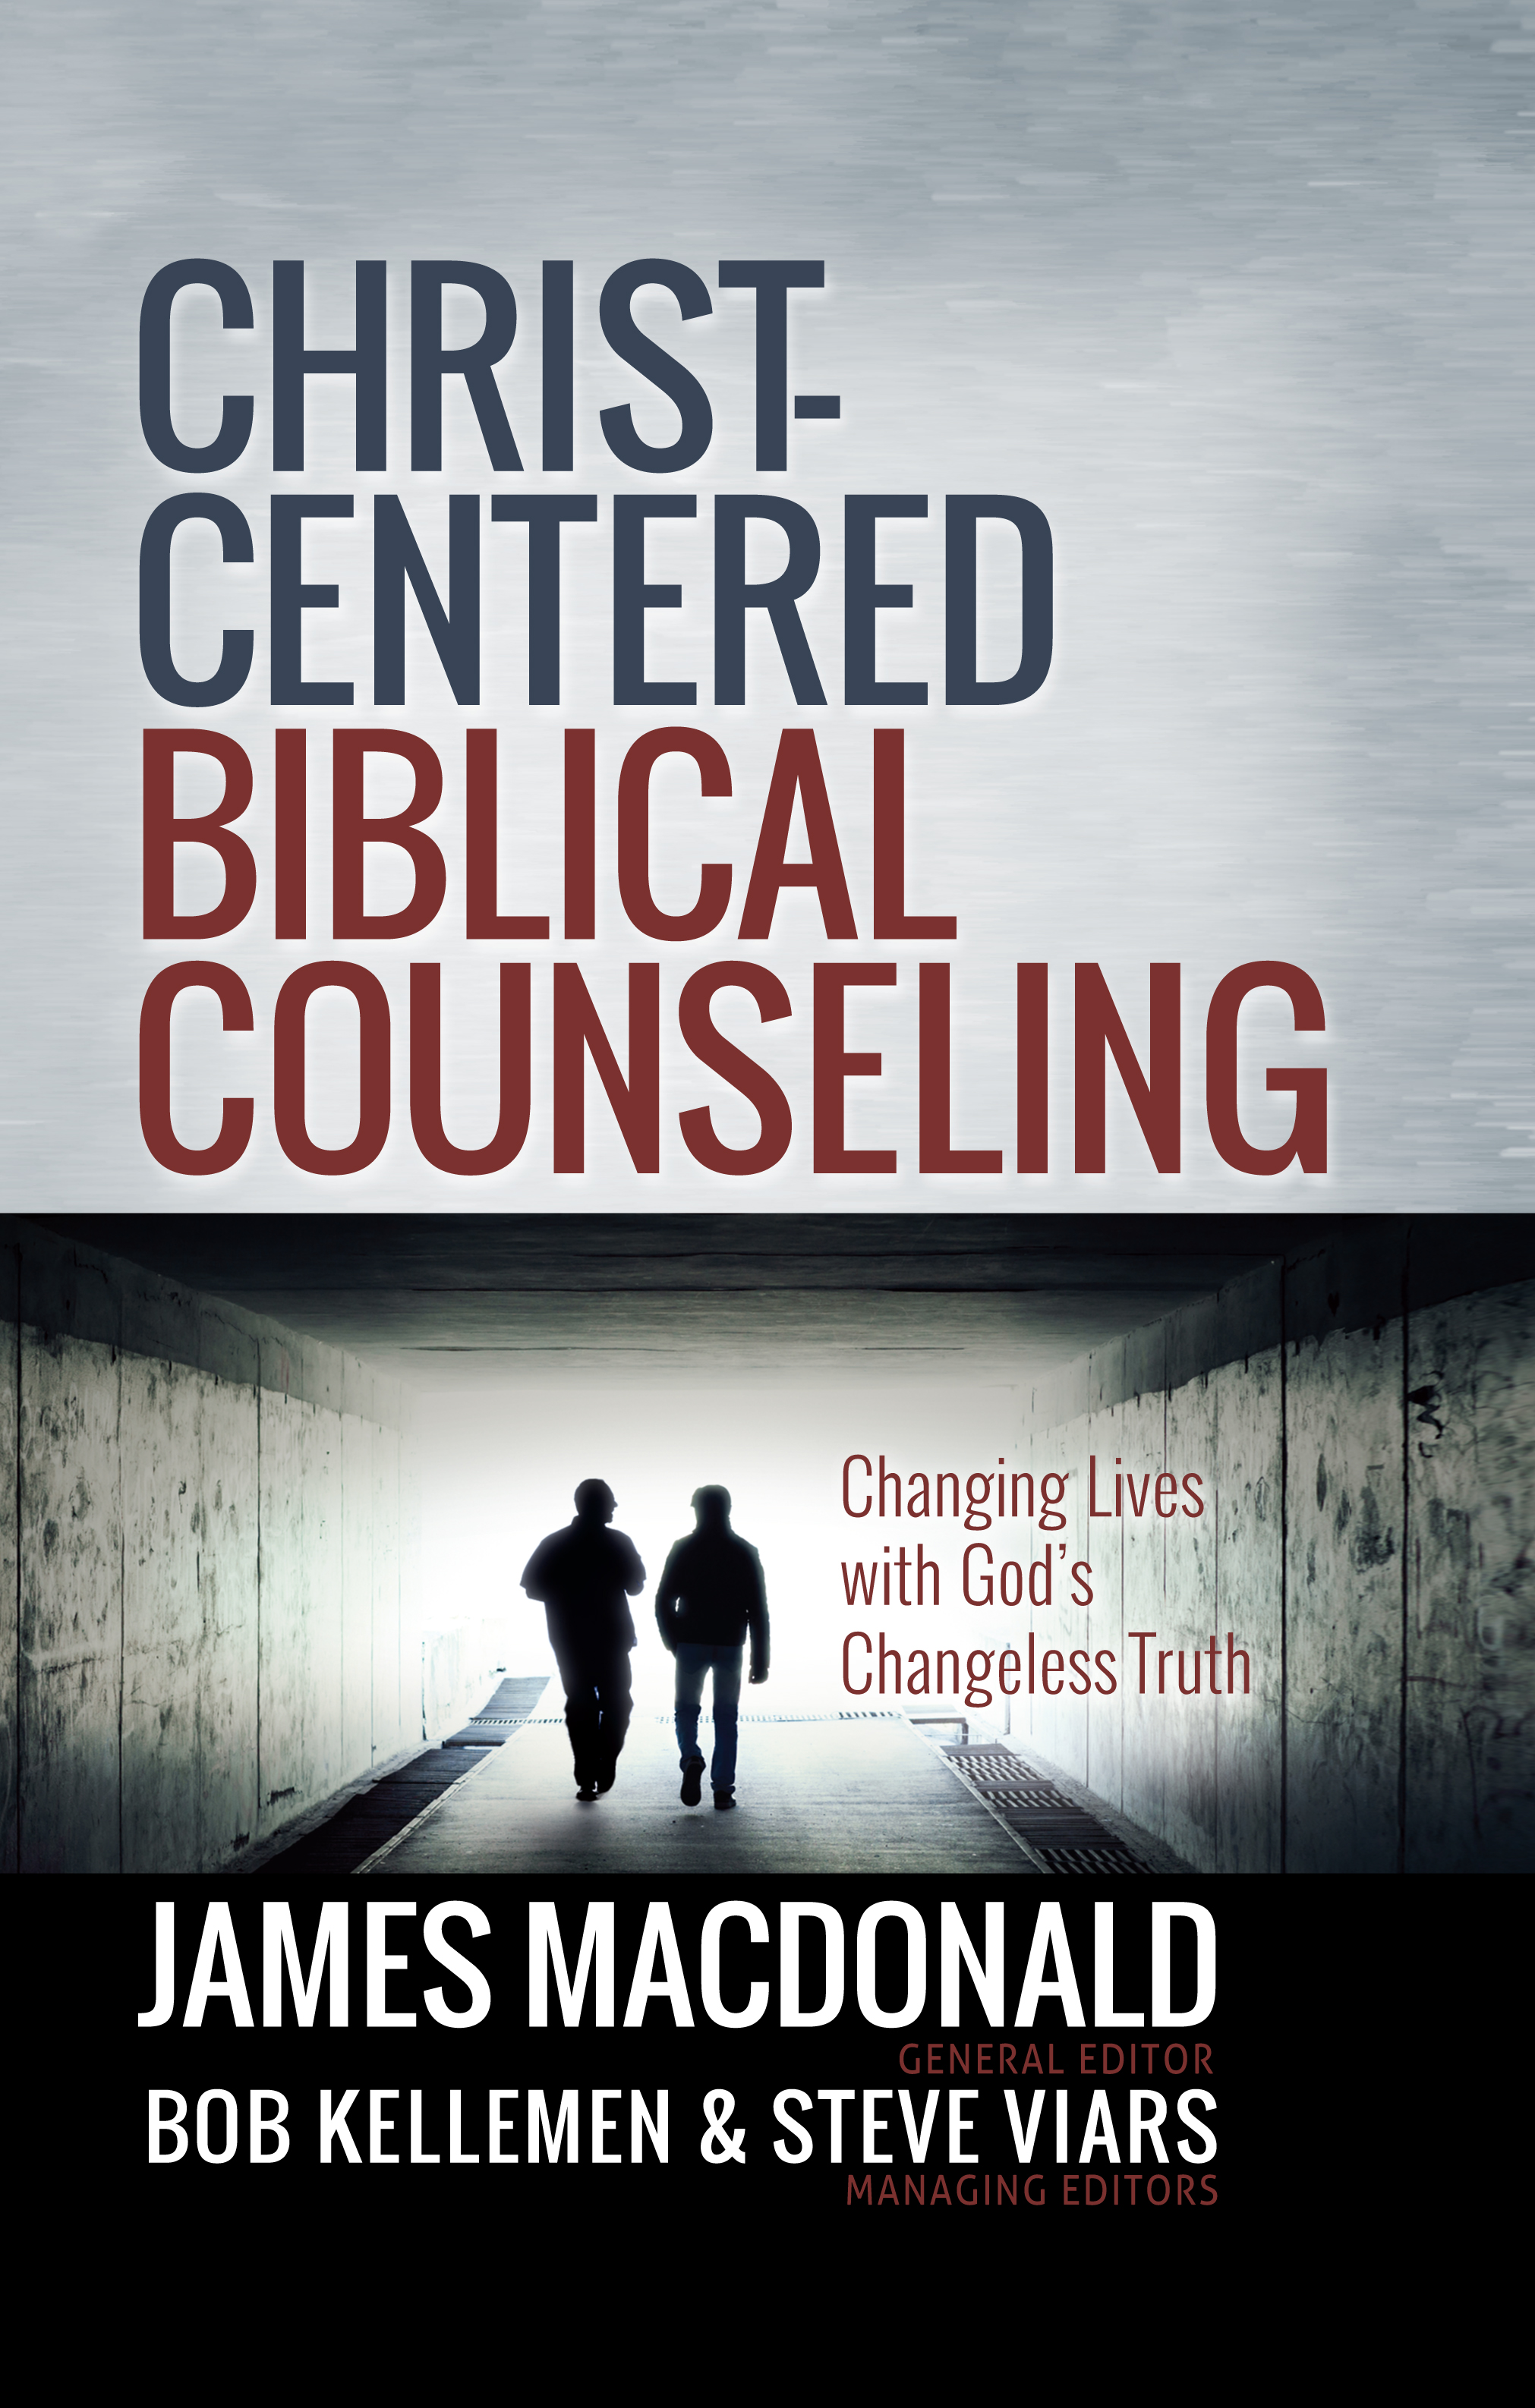 goal of christian counseling The first and foremost goal of biblical counseling is to conform a sinning brethren into christlikeness, or help him mature in the christian faith as god intends for every believer (col1:9 2 pet 3:18).